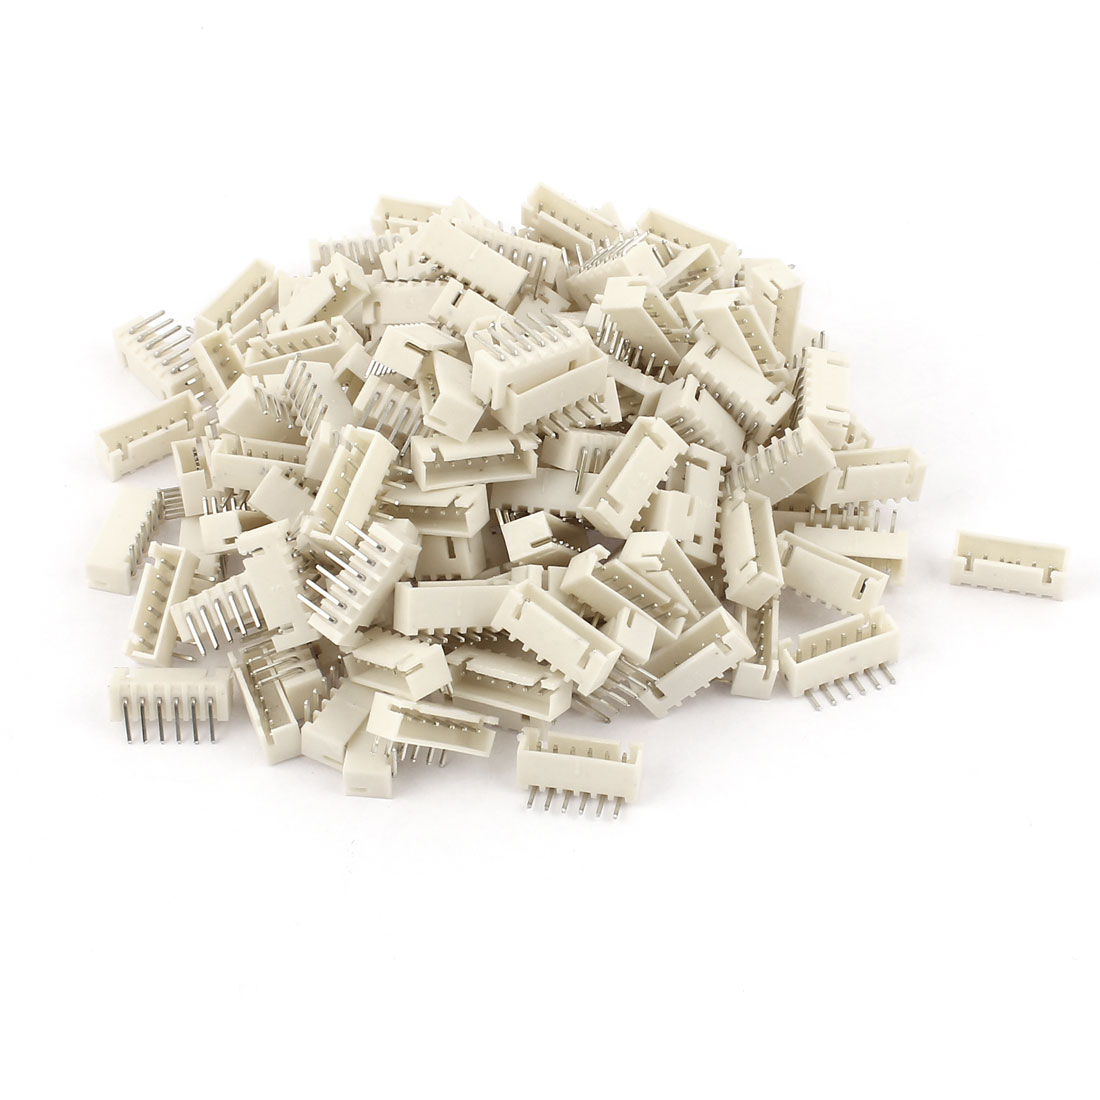 150pcs 2.54mm Pitch Right Angle 6 Pins XH Header Socket Male JST Connector